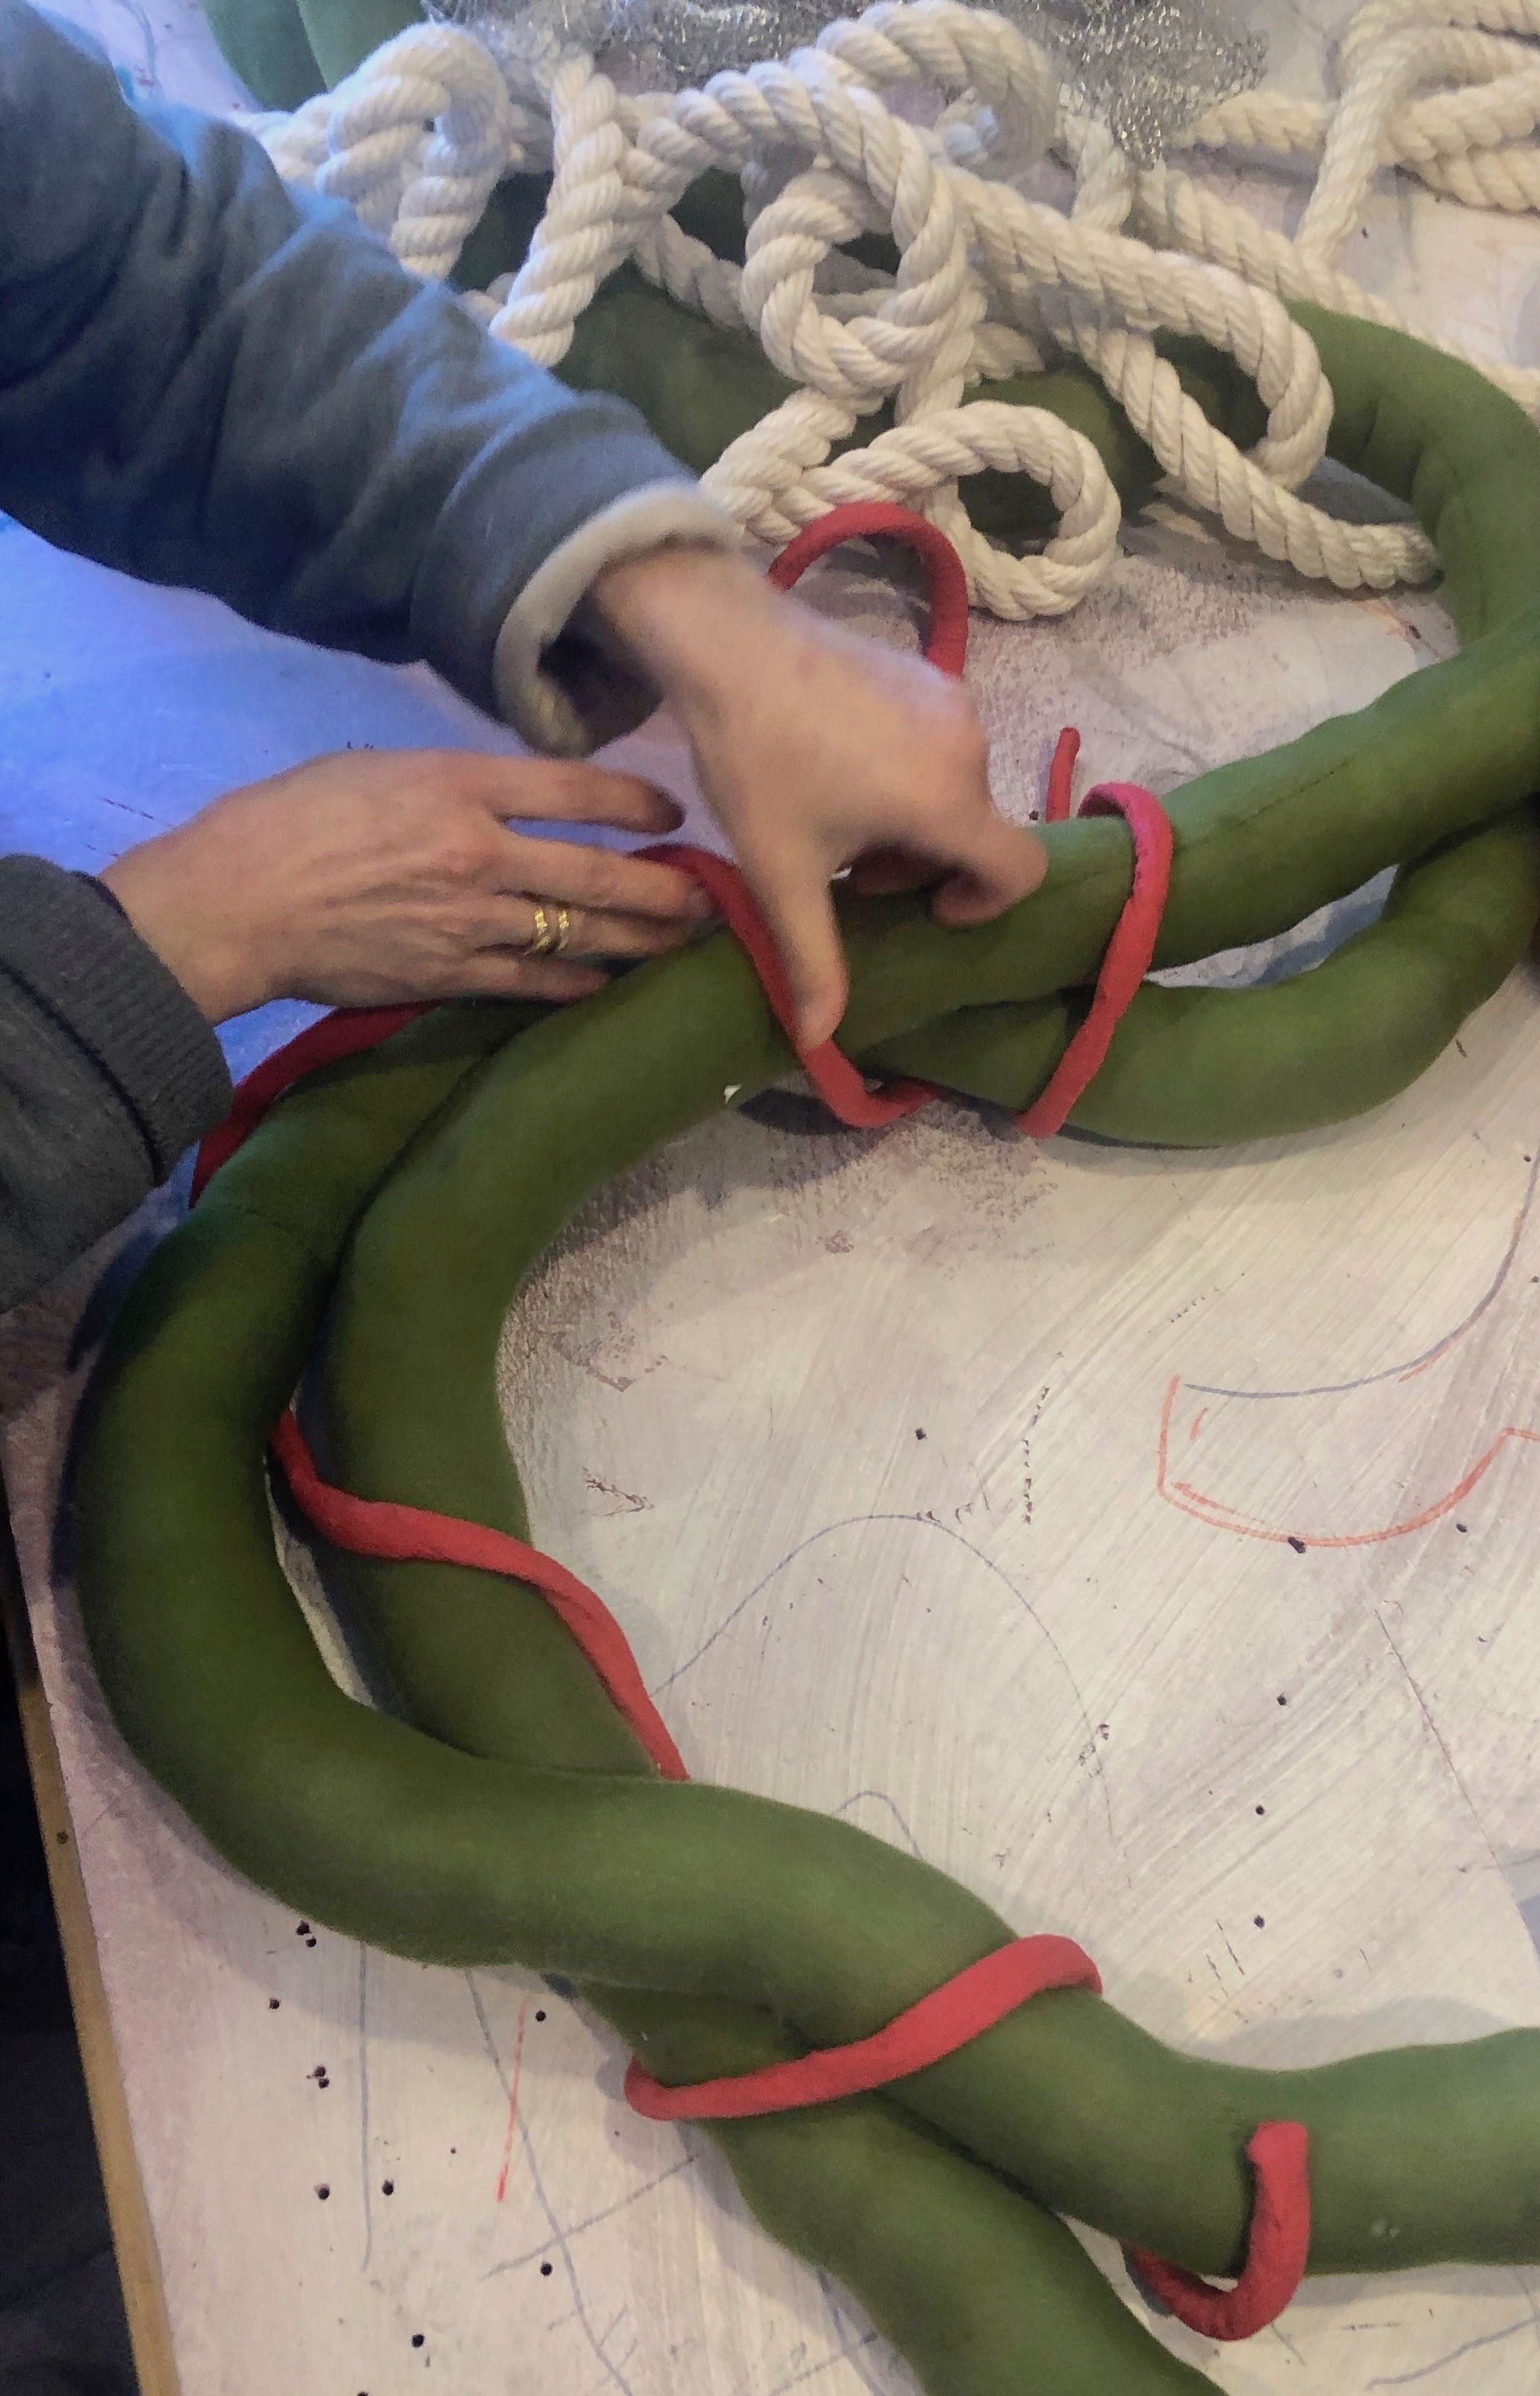 Putting the new coil into 3 dimensions, using a stuffed seamed form.